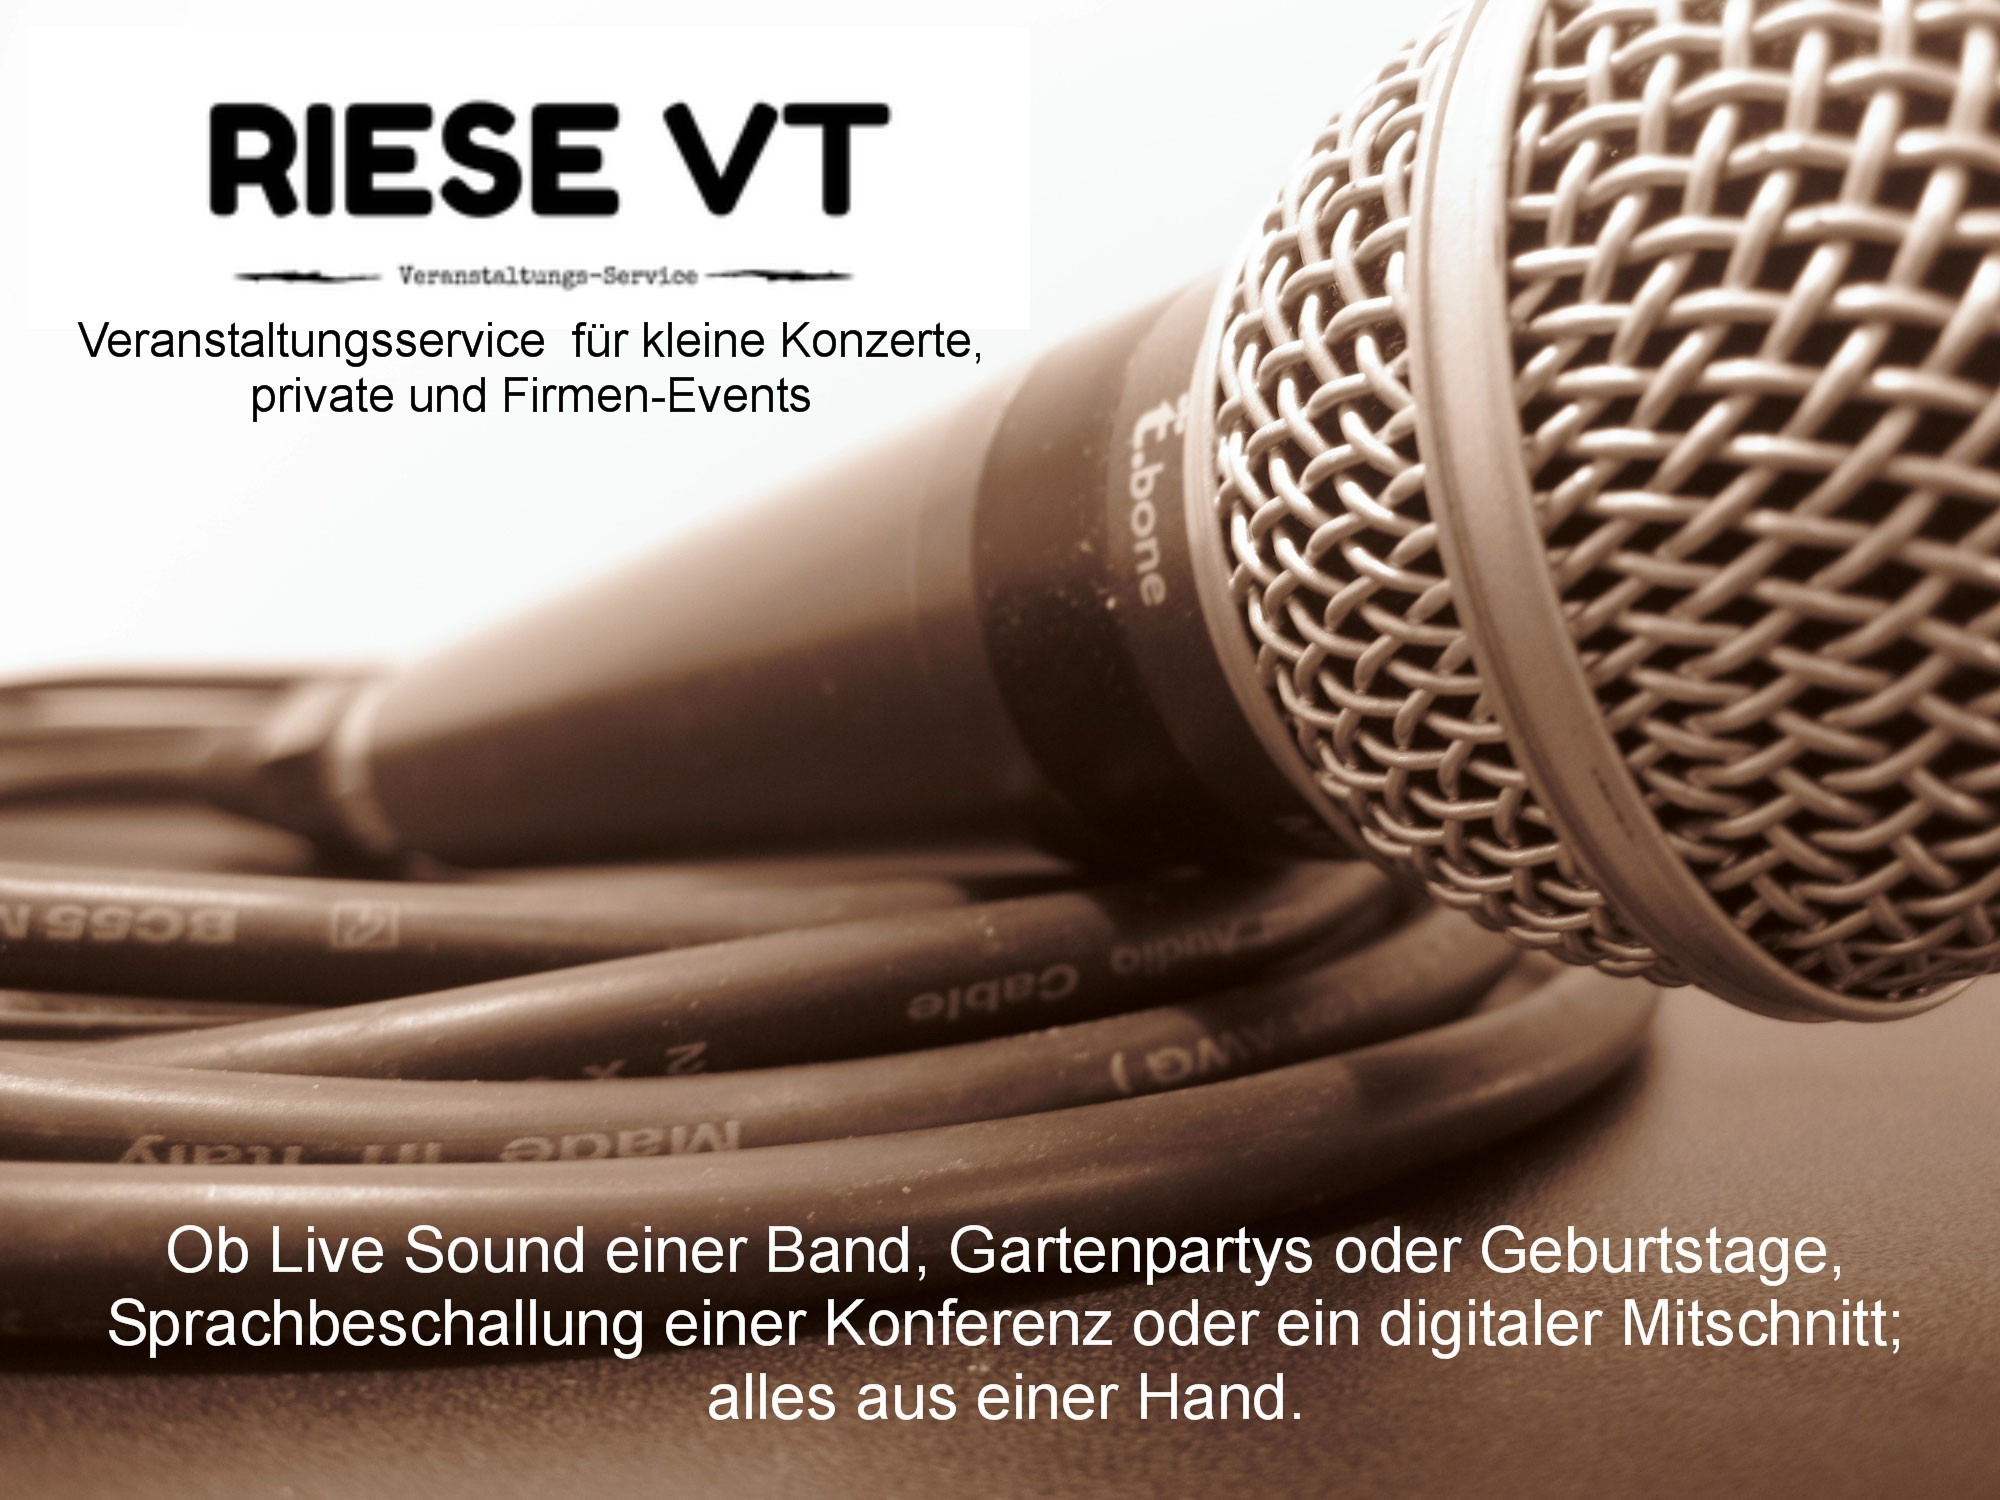 riese-vt-Banner-02